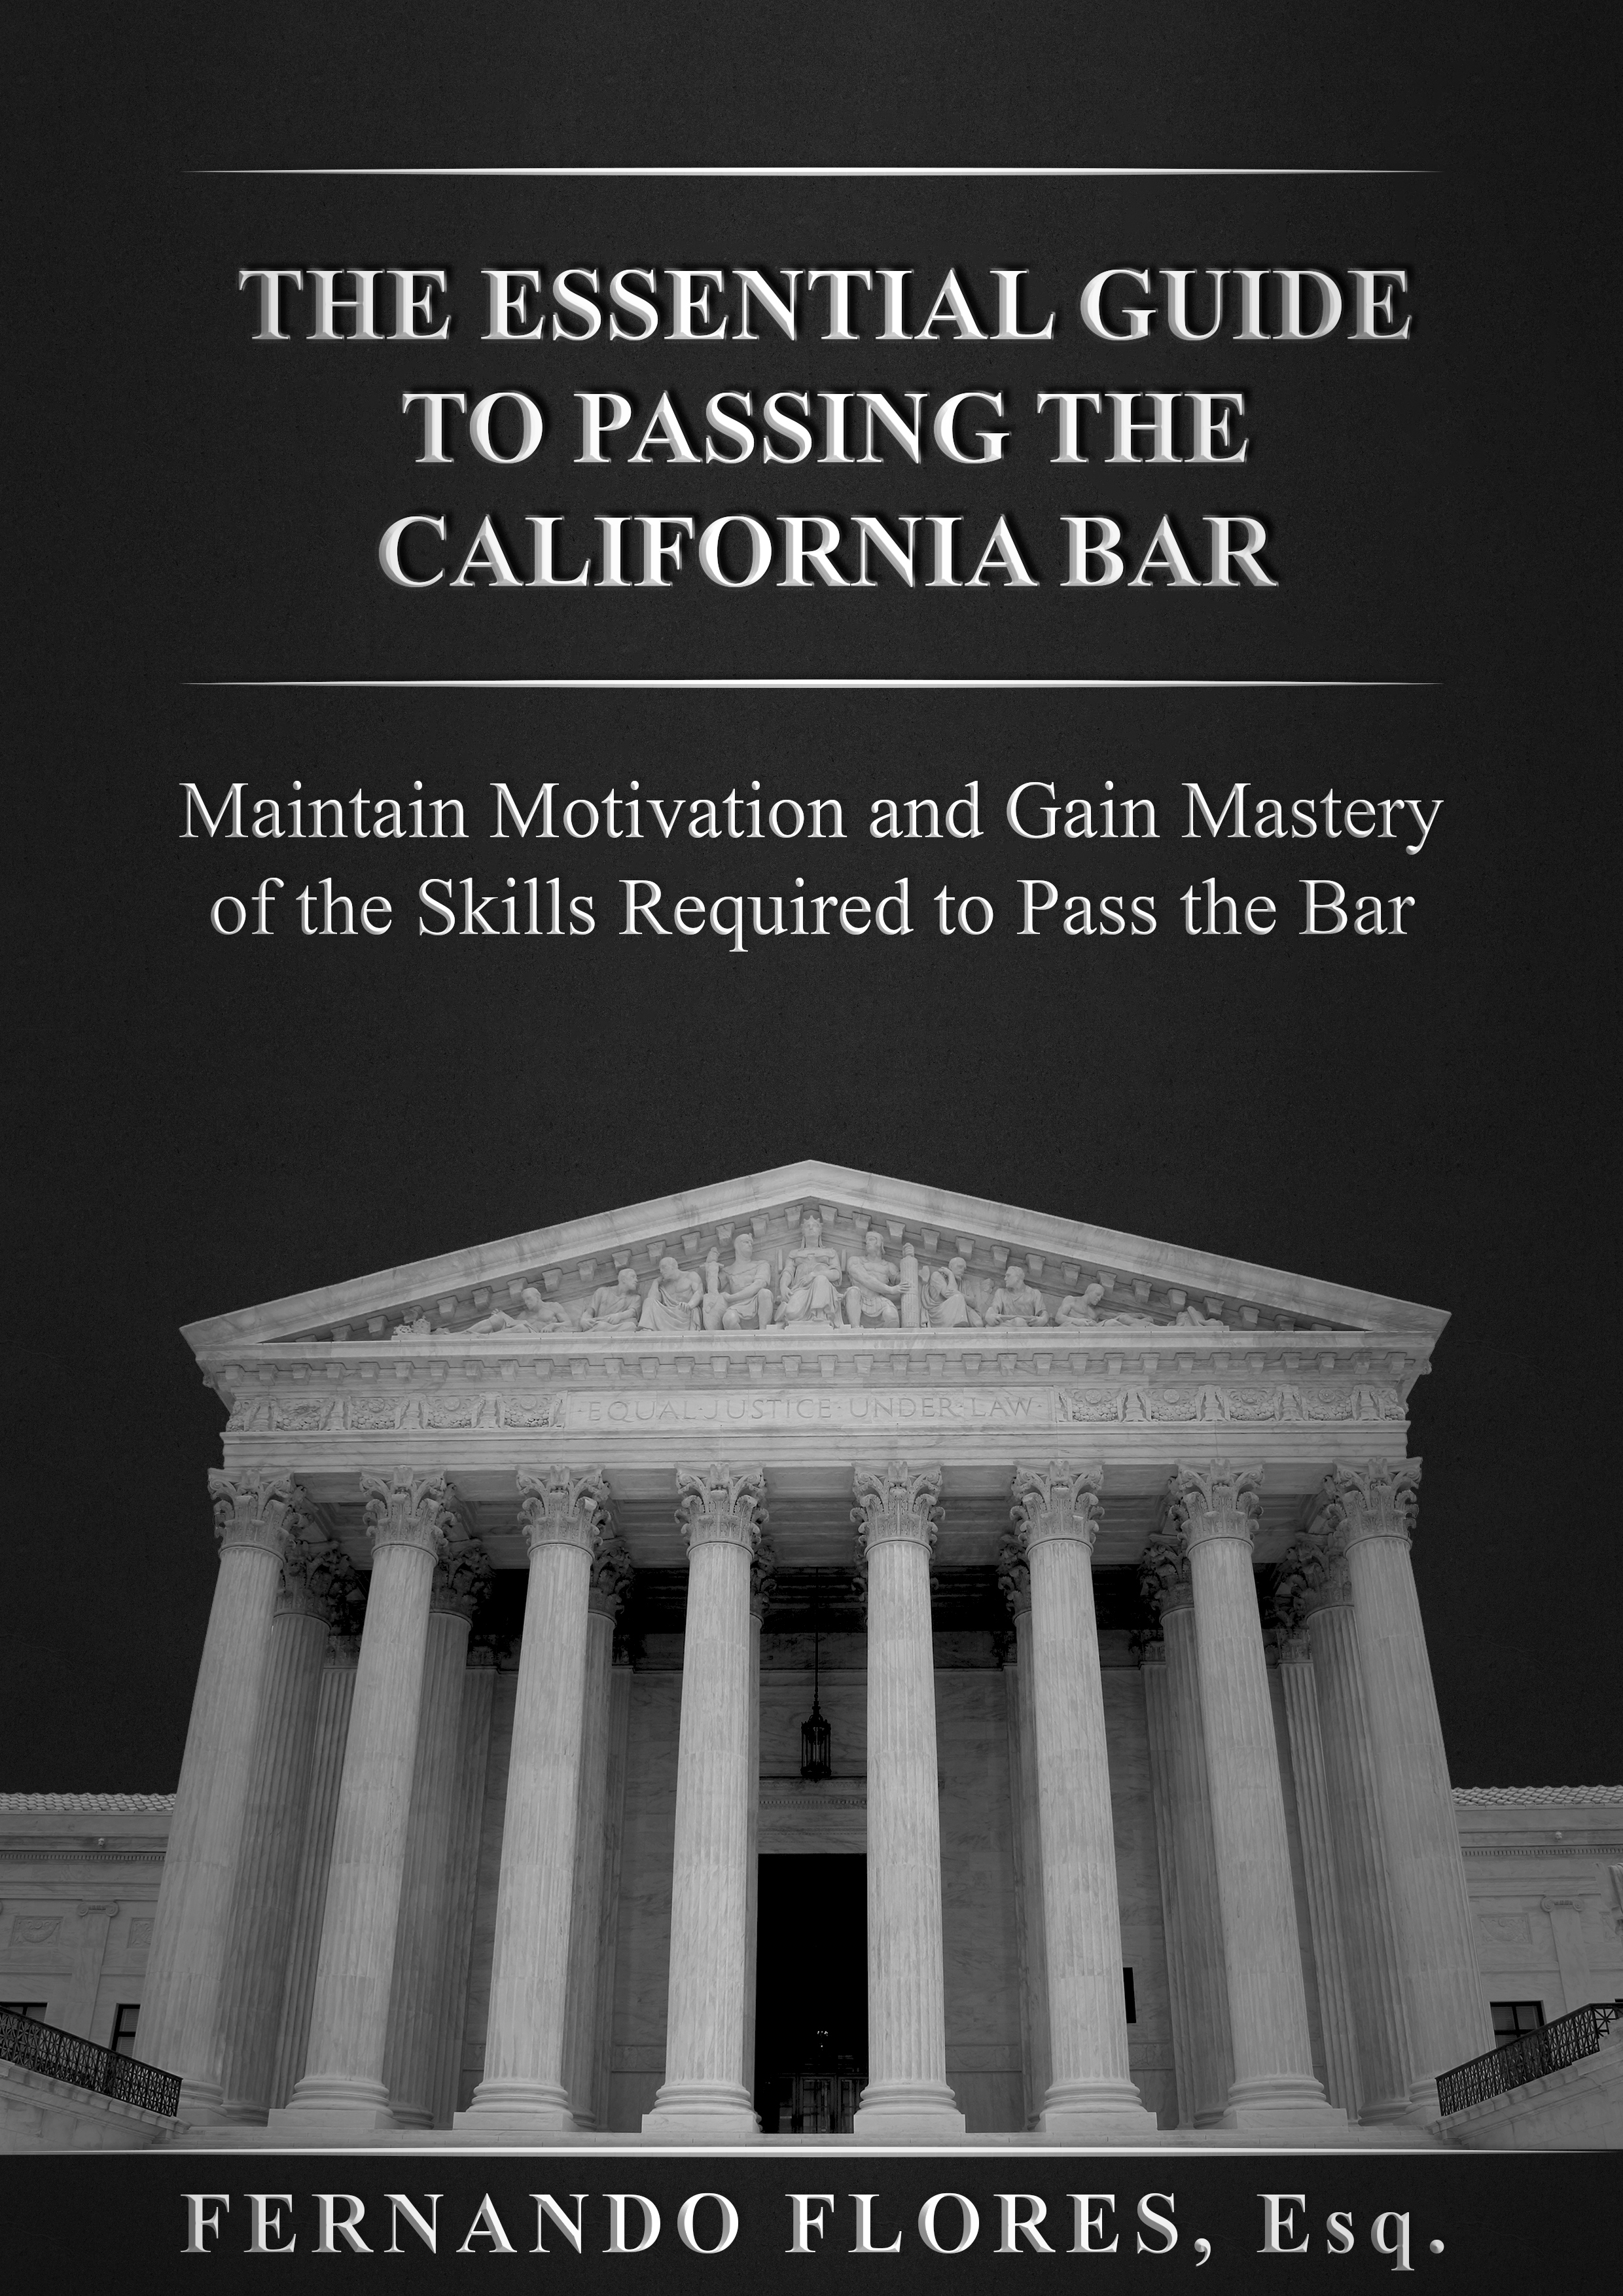 The Essential Guide to Passing the California Bar